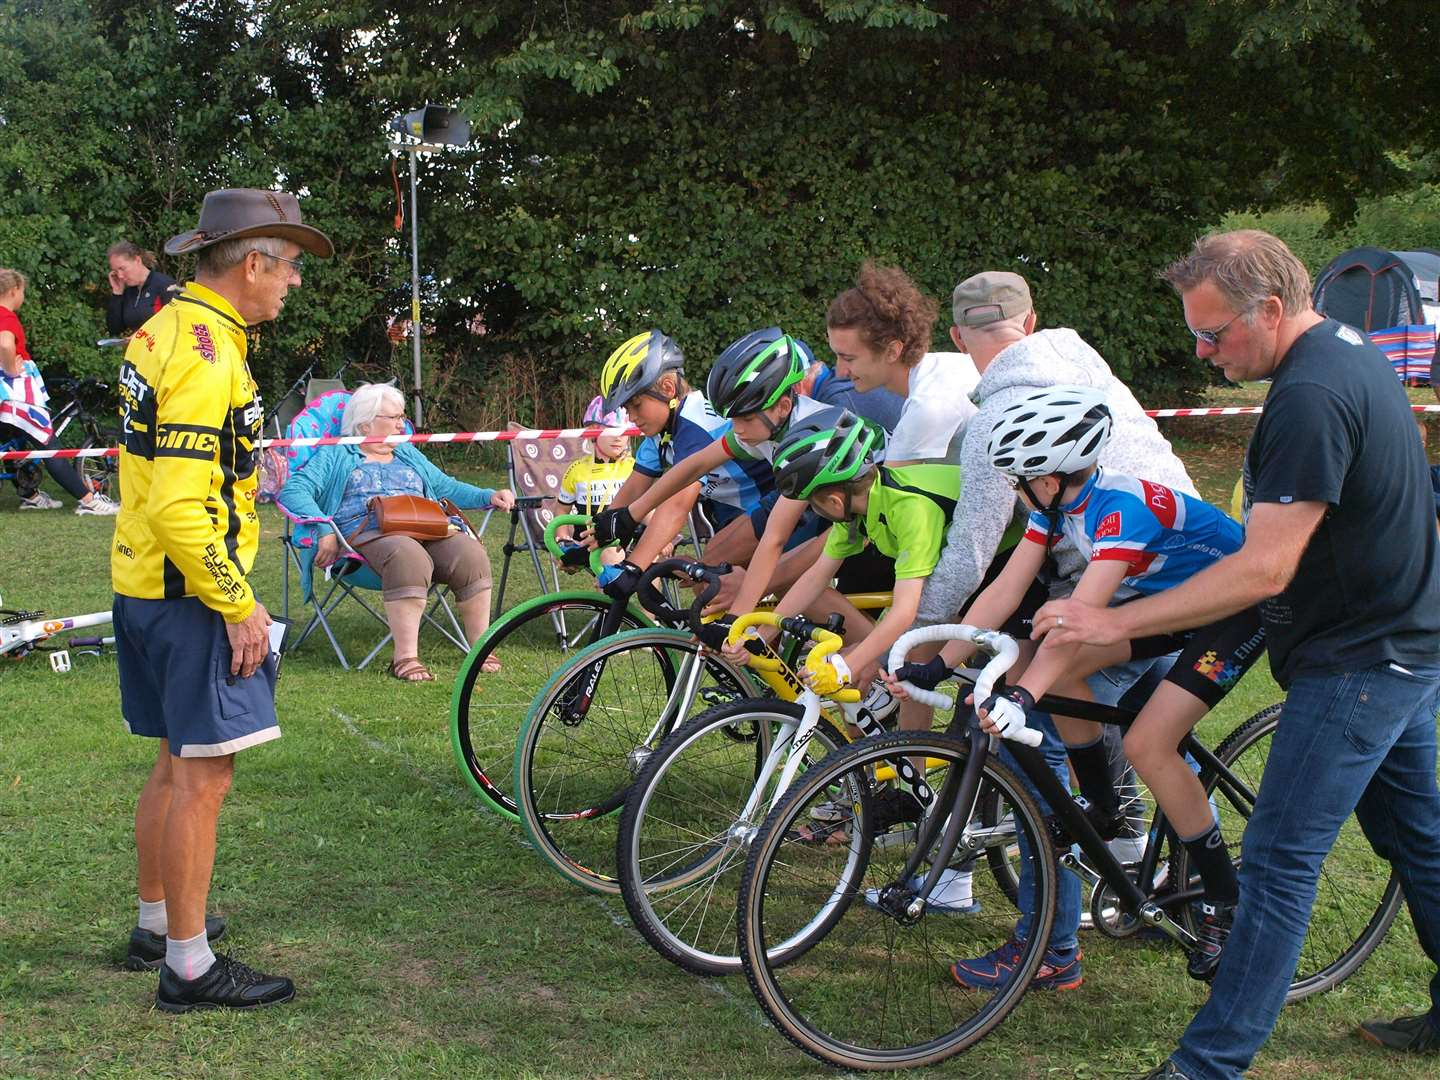 START LINE: Max Pendleton (Organiser of the grass-track) briefs the riders in the Under-12s' Keirin race